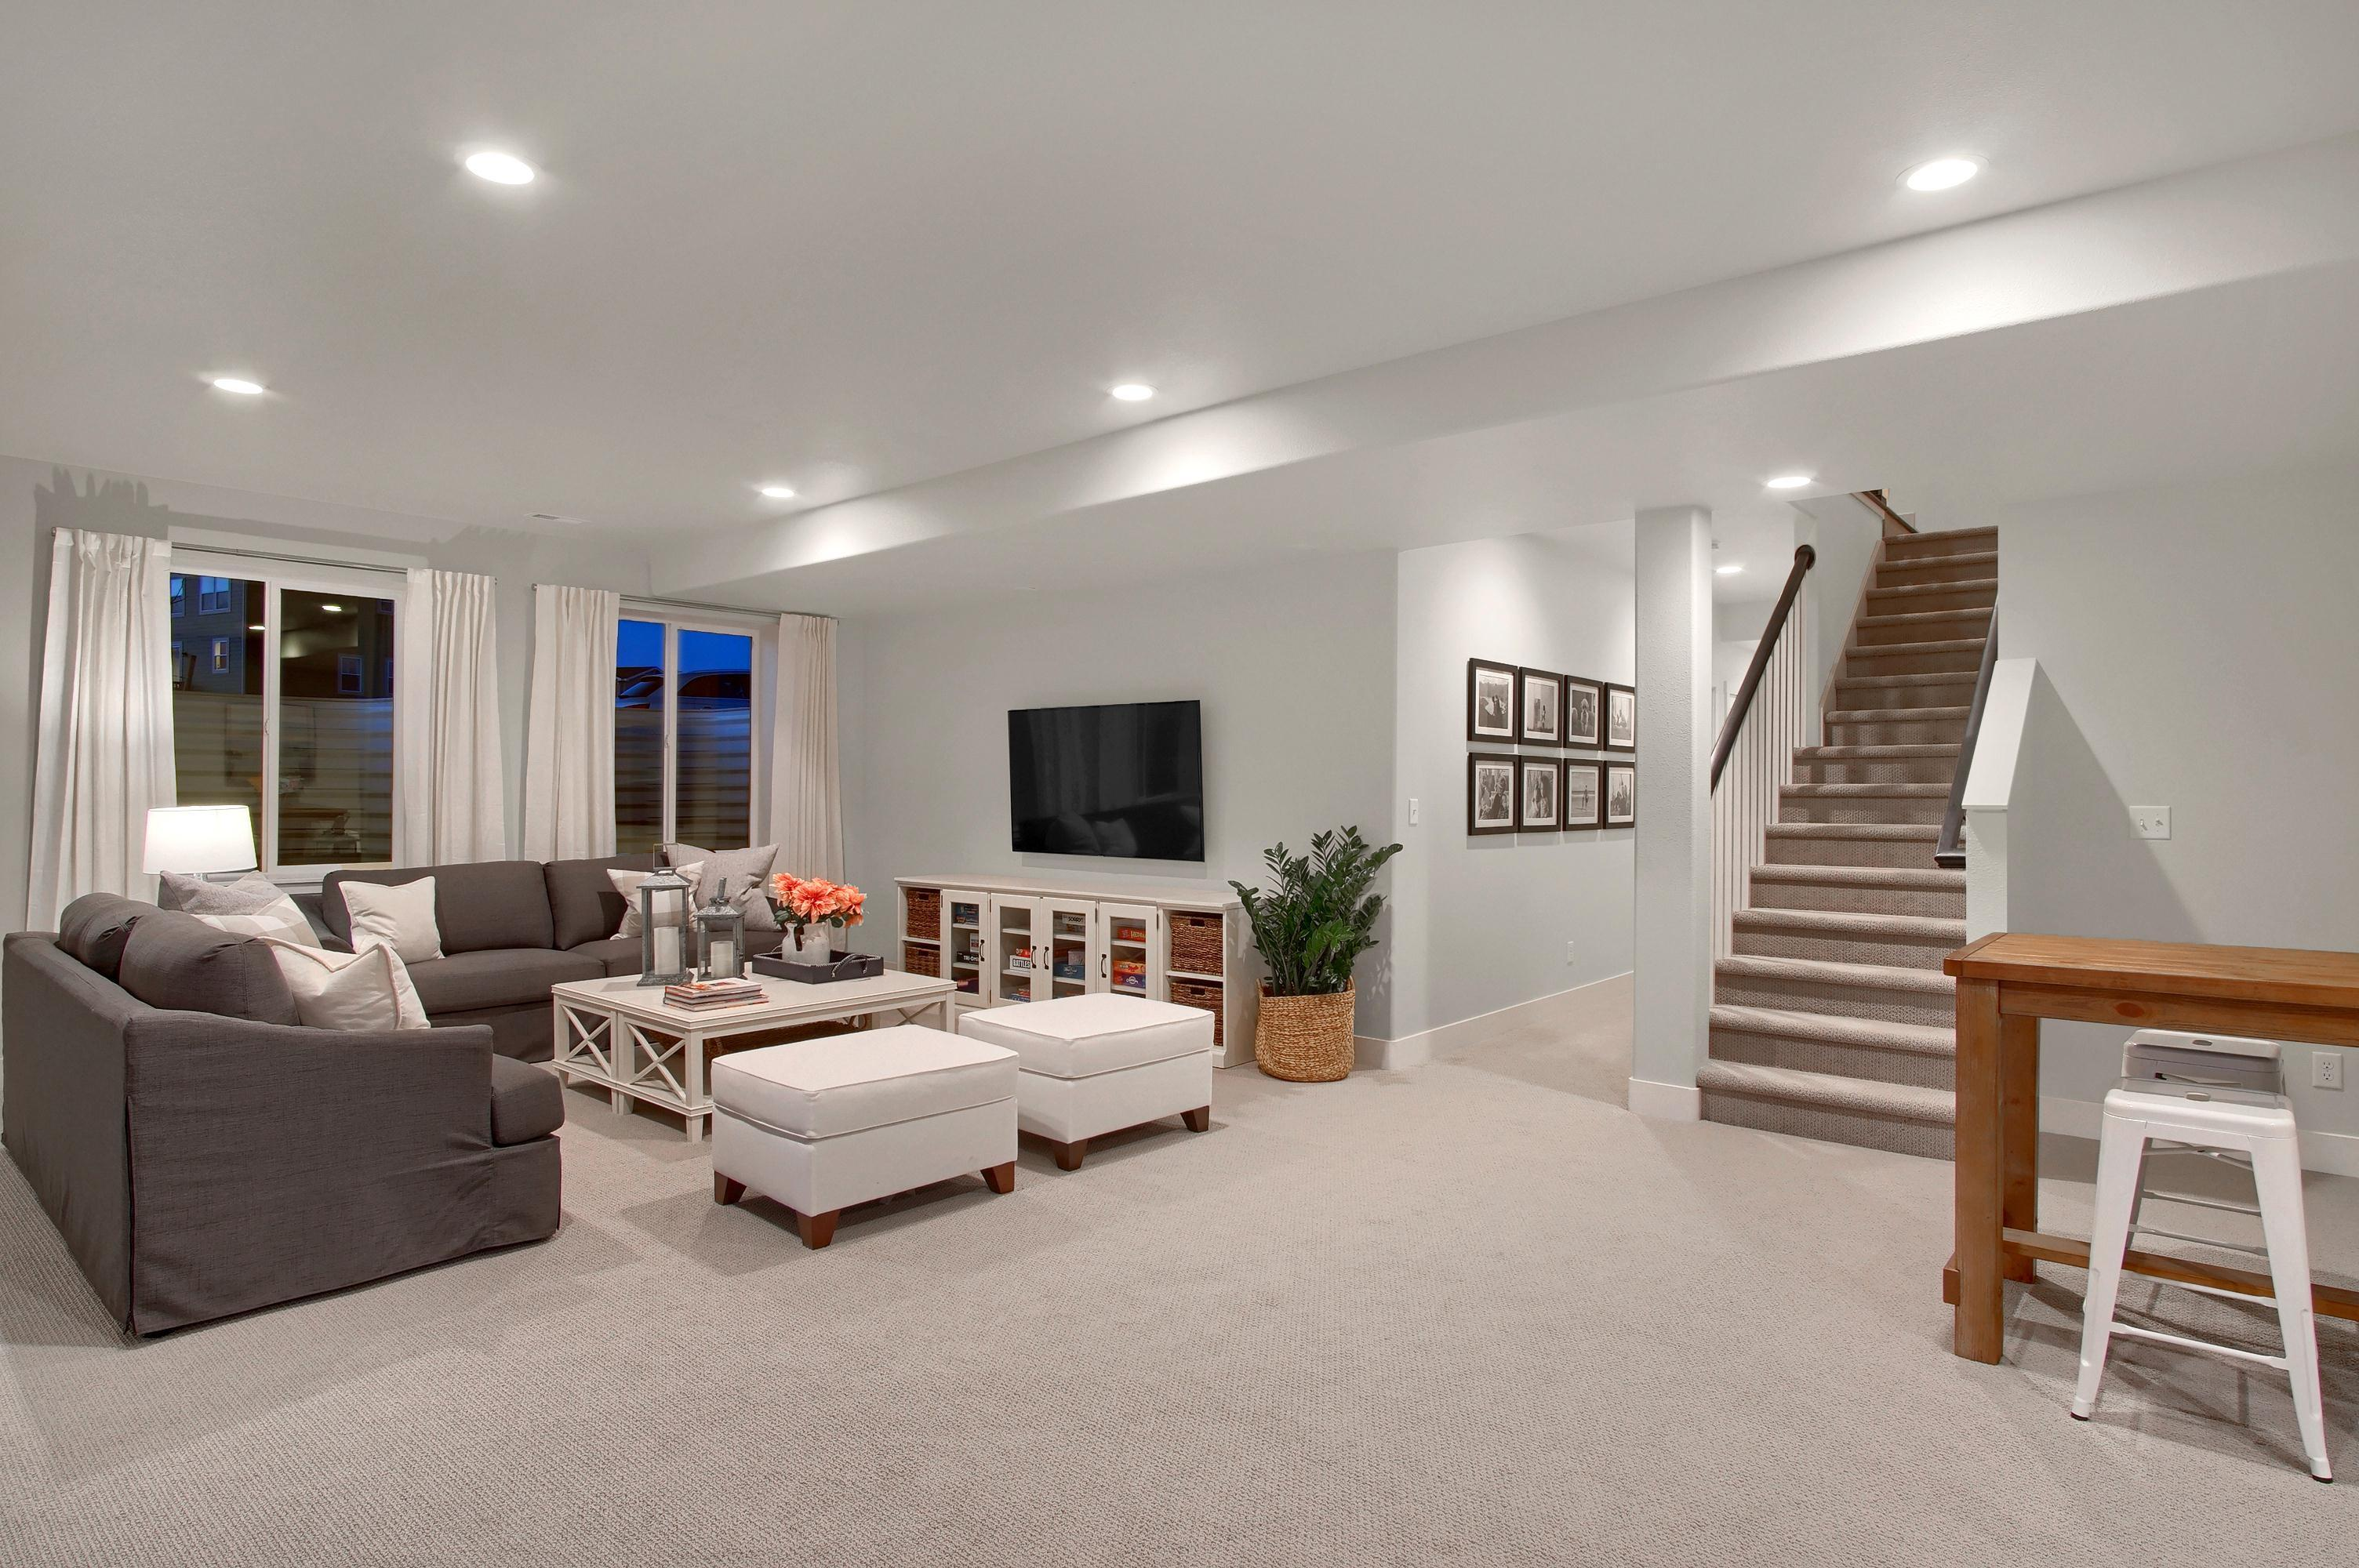 Living Area featured in the Mackintosh By Keller Homes, A Toll Bros. Co. in Colorado Springs, CO